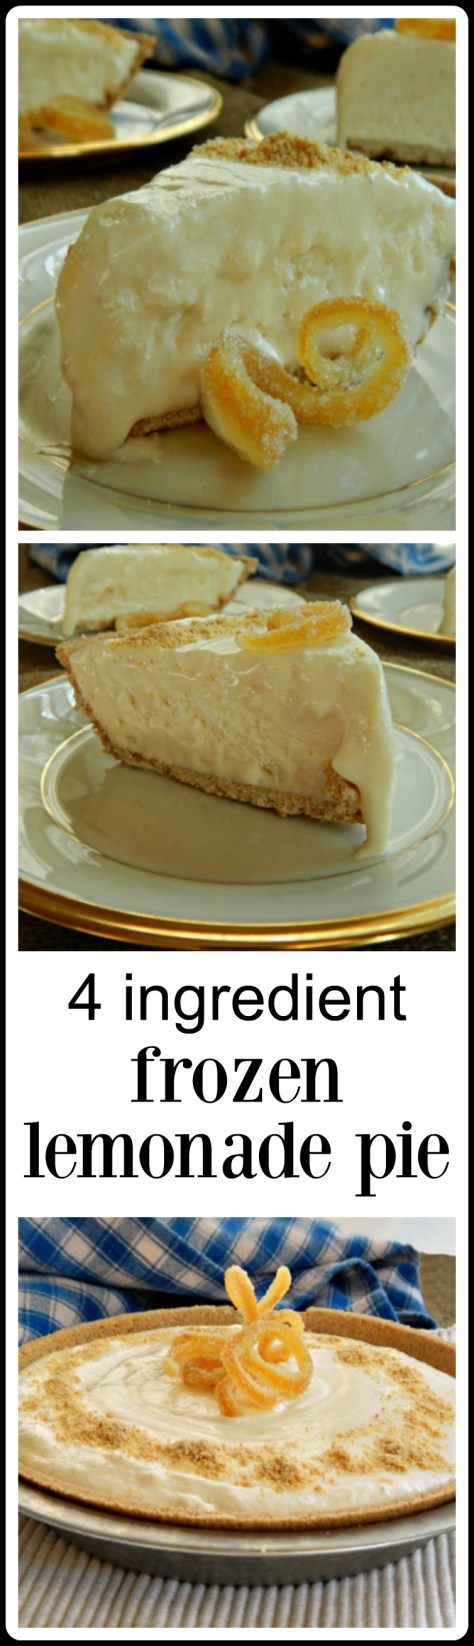 Frozen Lemonade Pie - It's just what you need on a hot summer day at the cottage!